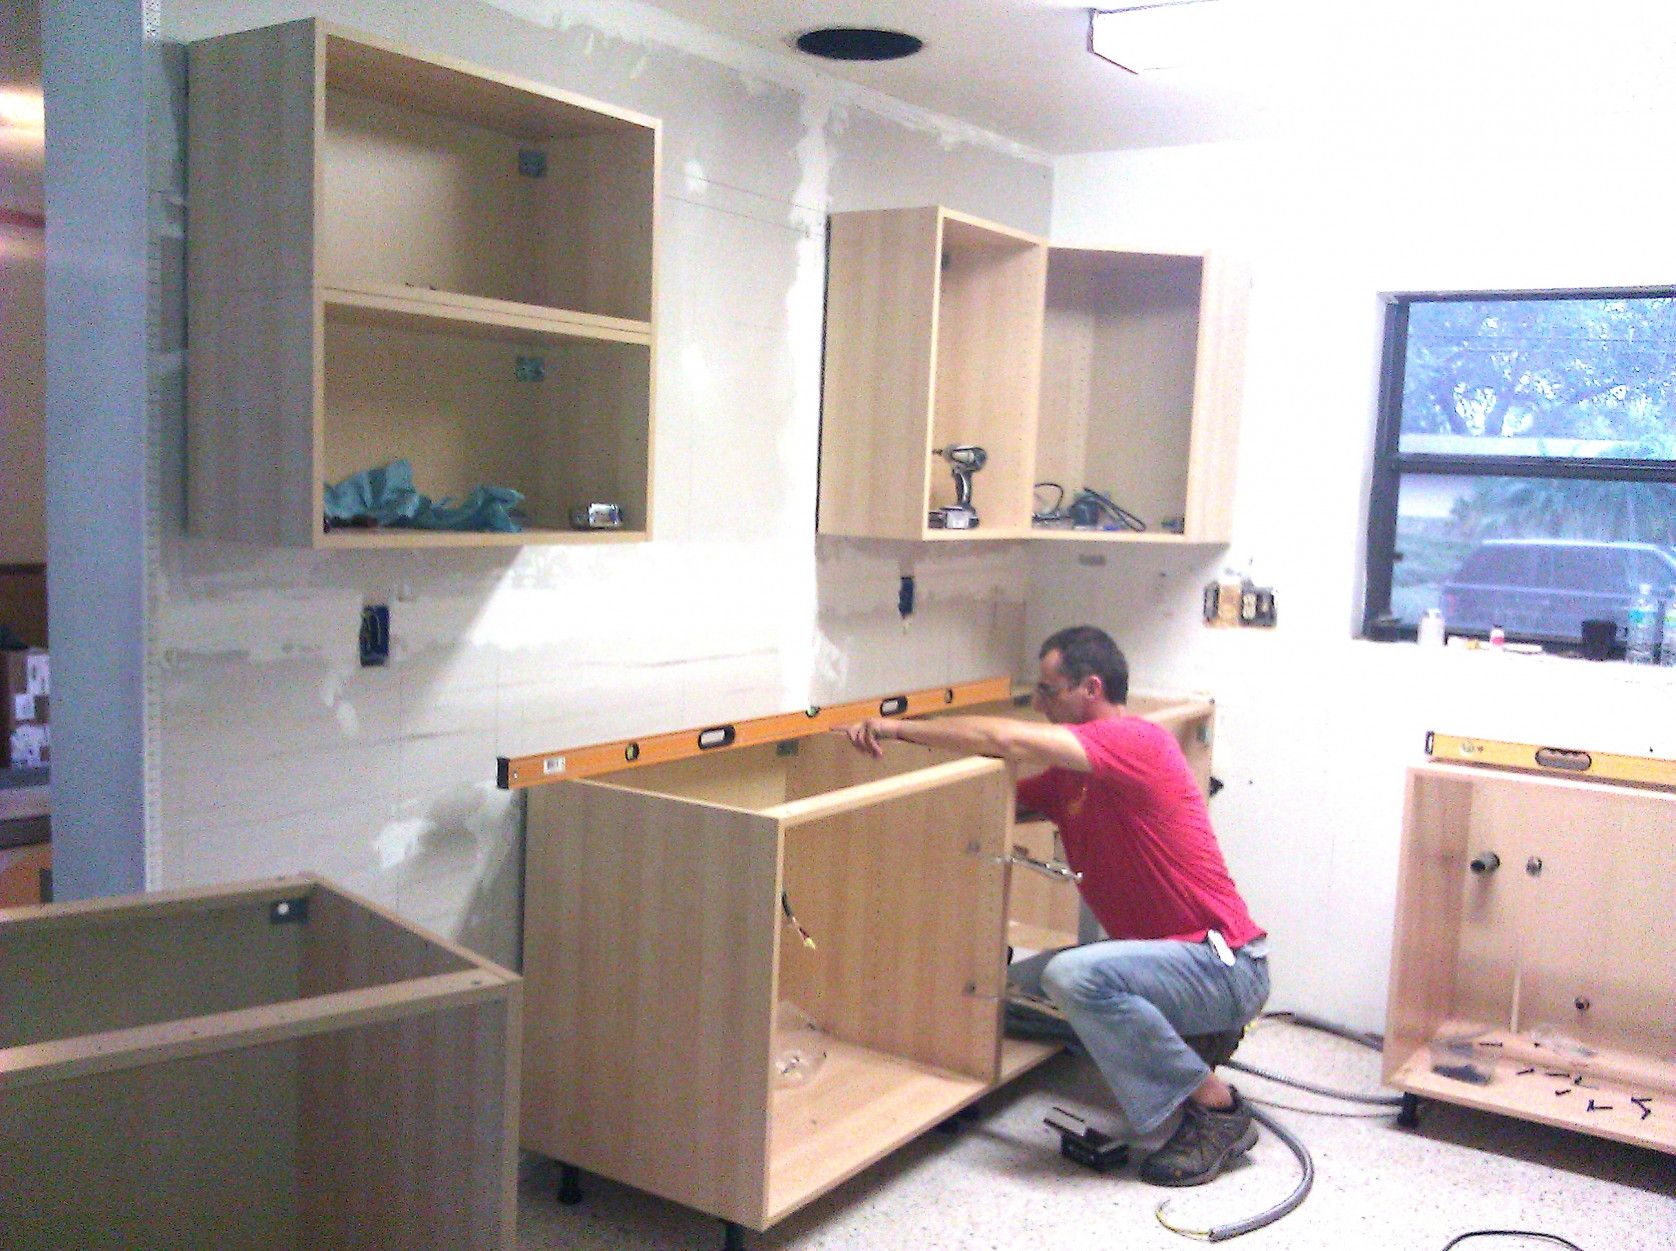 20 does ikea install kitchen cabinets apartment kitchen cabinet rh pinterest com how long does it take to install ikea kitchen cabinets how much does ikea charge to install kitchen cabinets